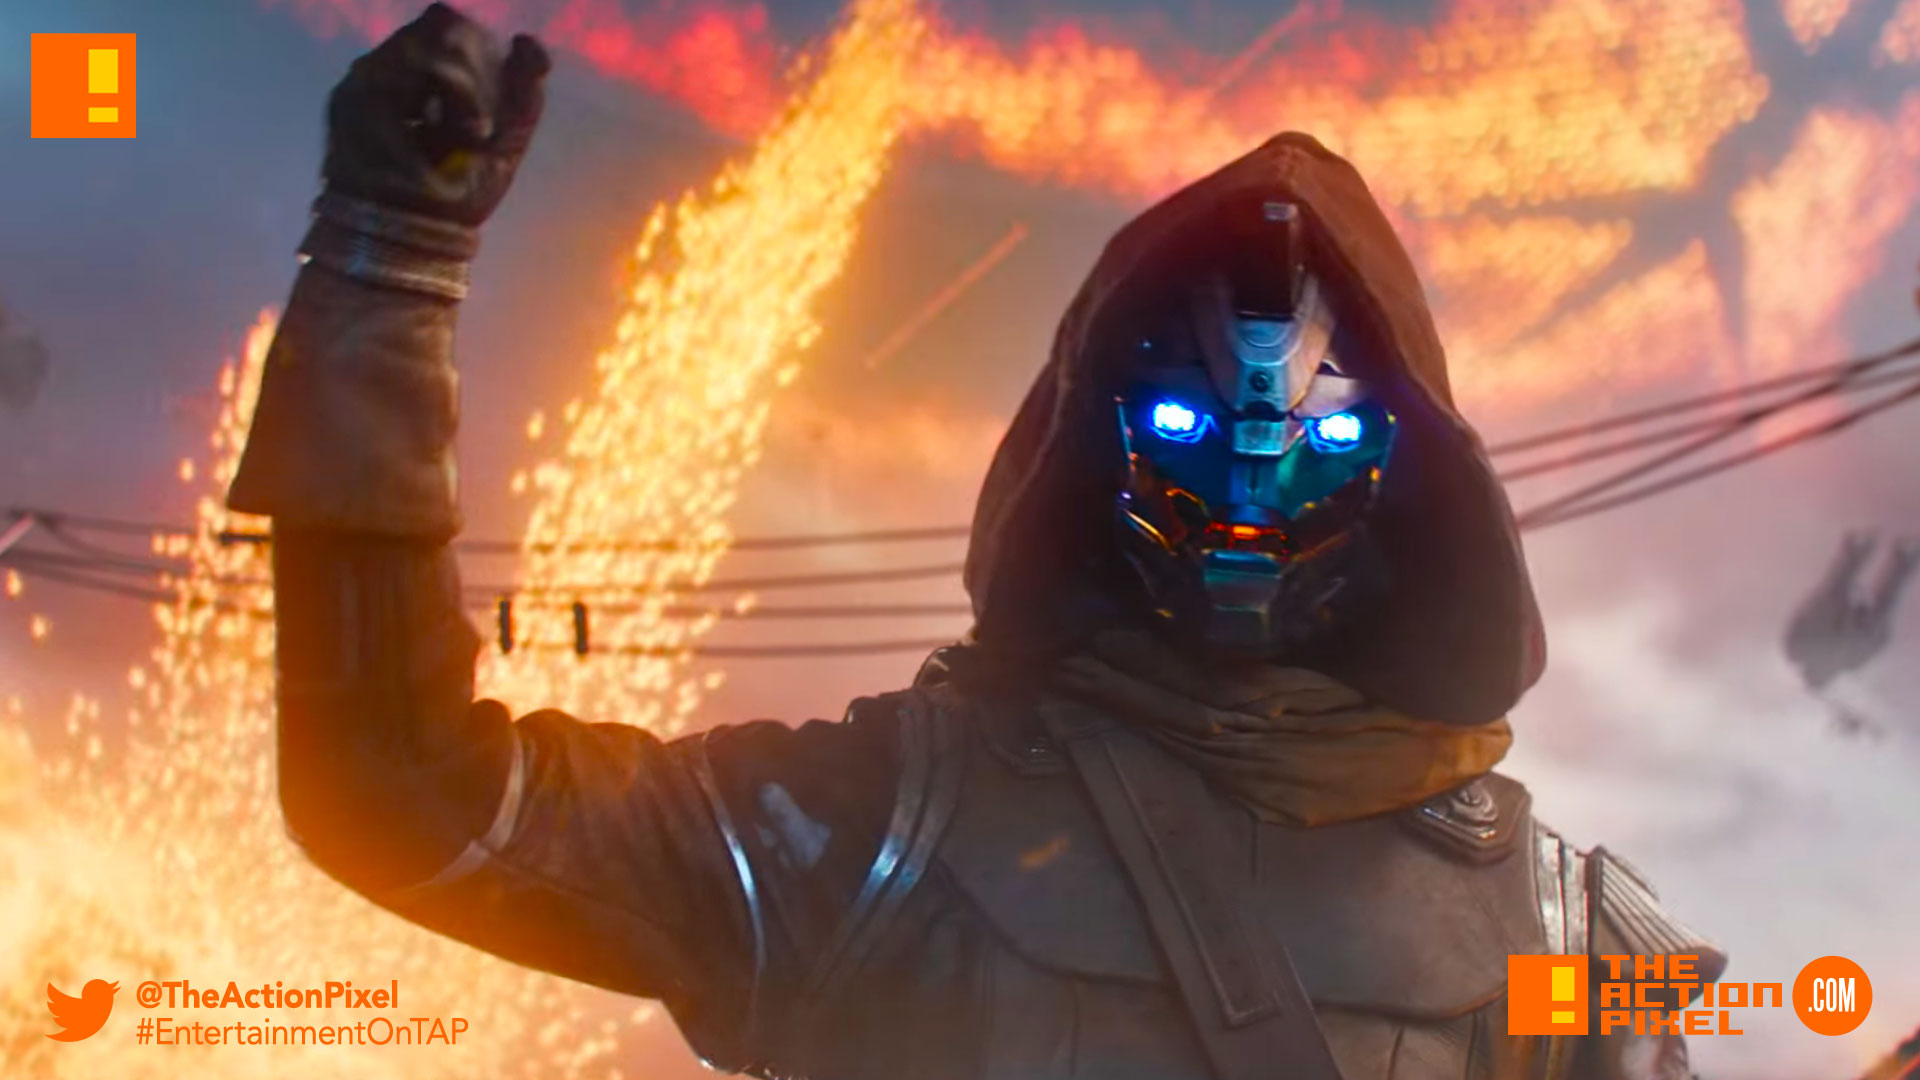 This Live Action Destiny 2 Trailer Is Going To Make You Wish The